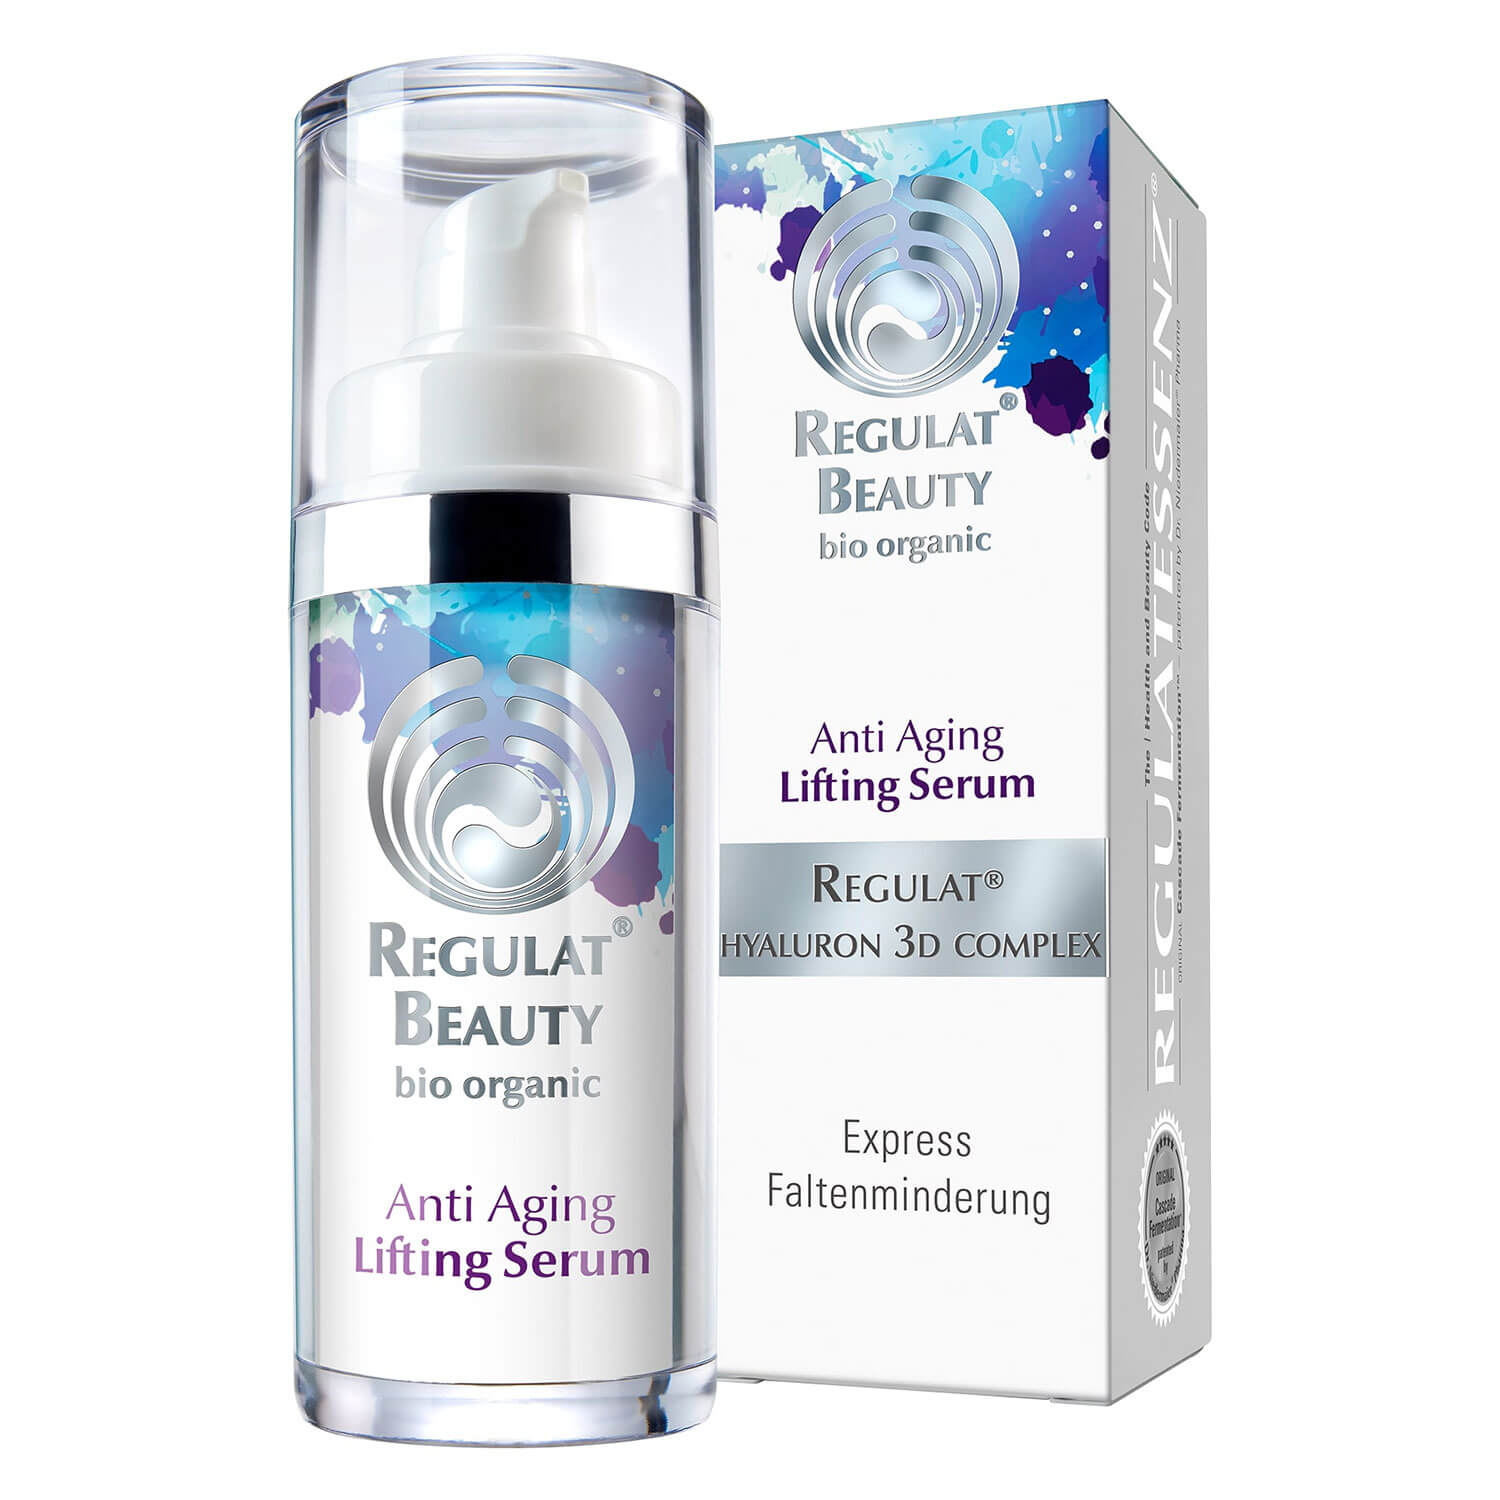 Regulat® Beauty - Anti Aging Lifting Serum